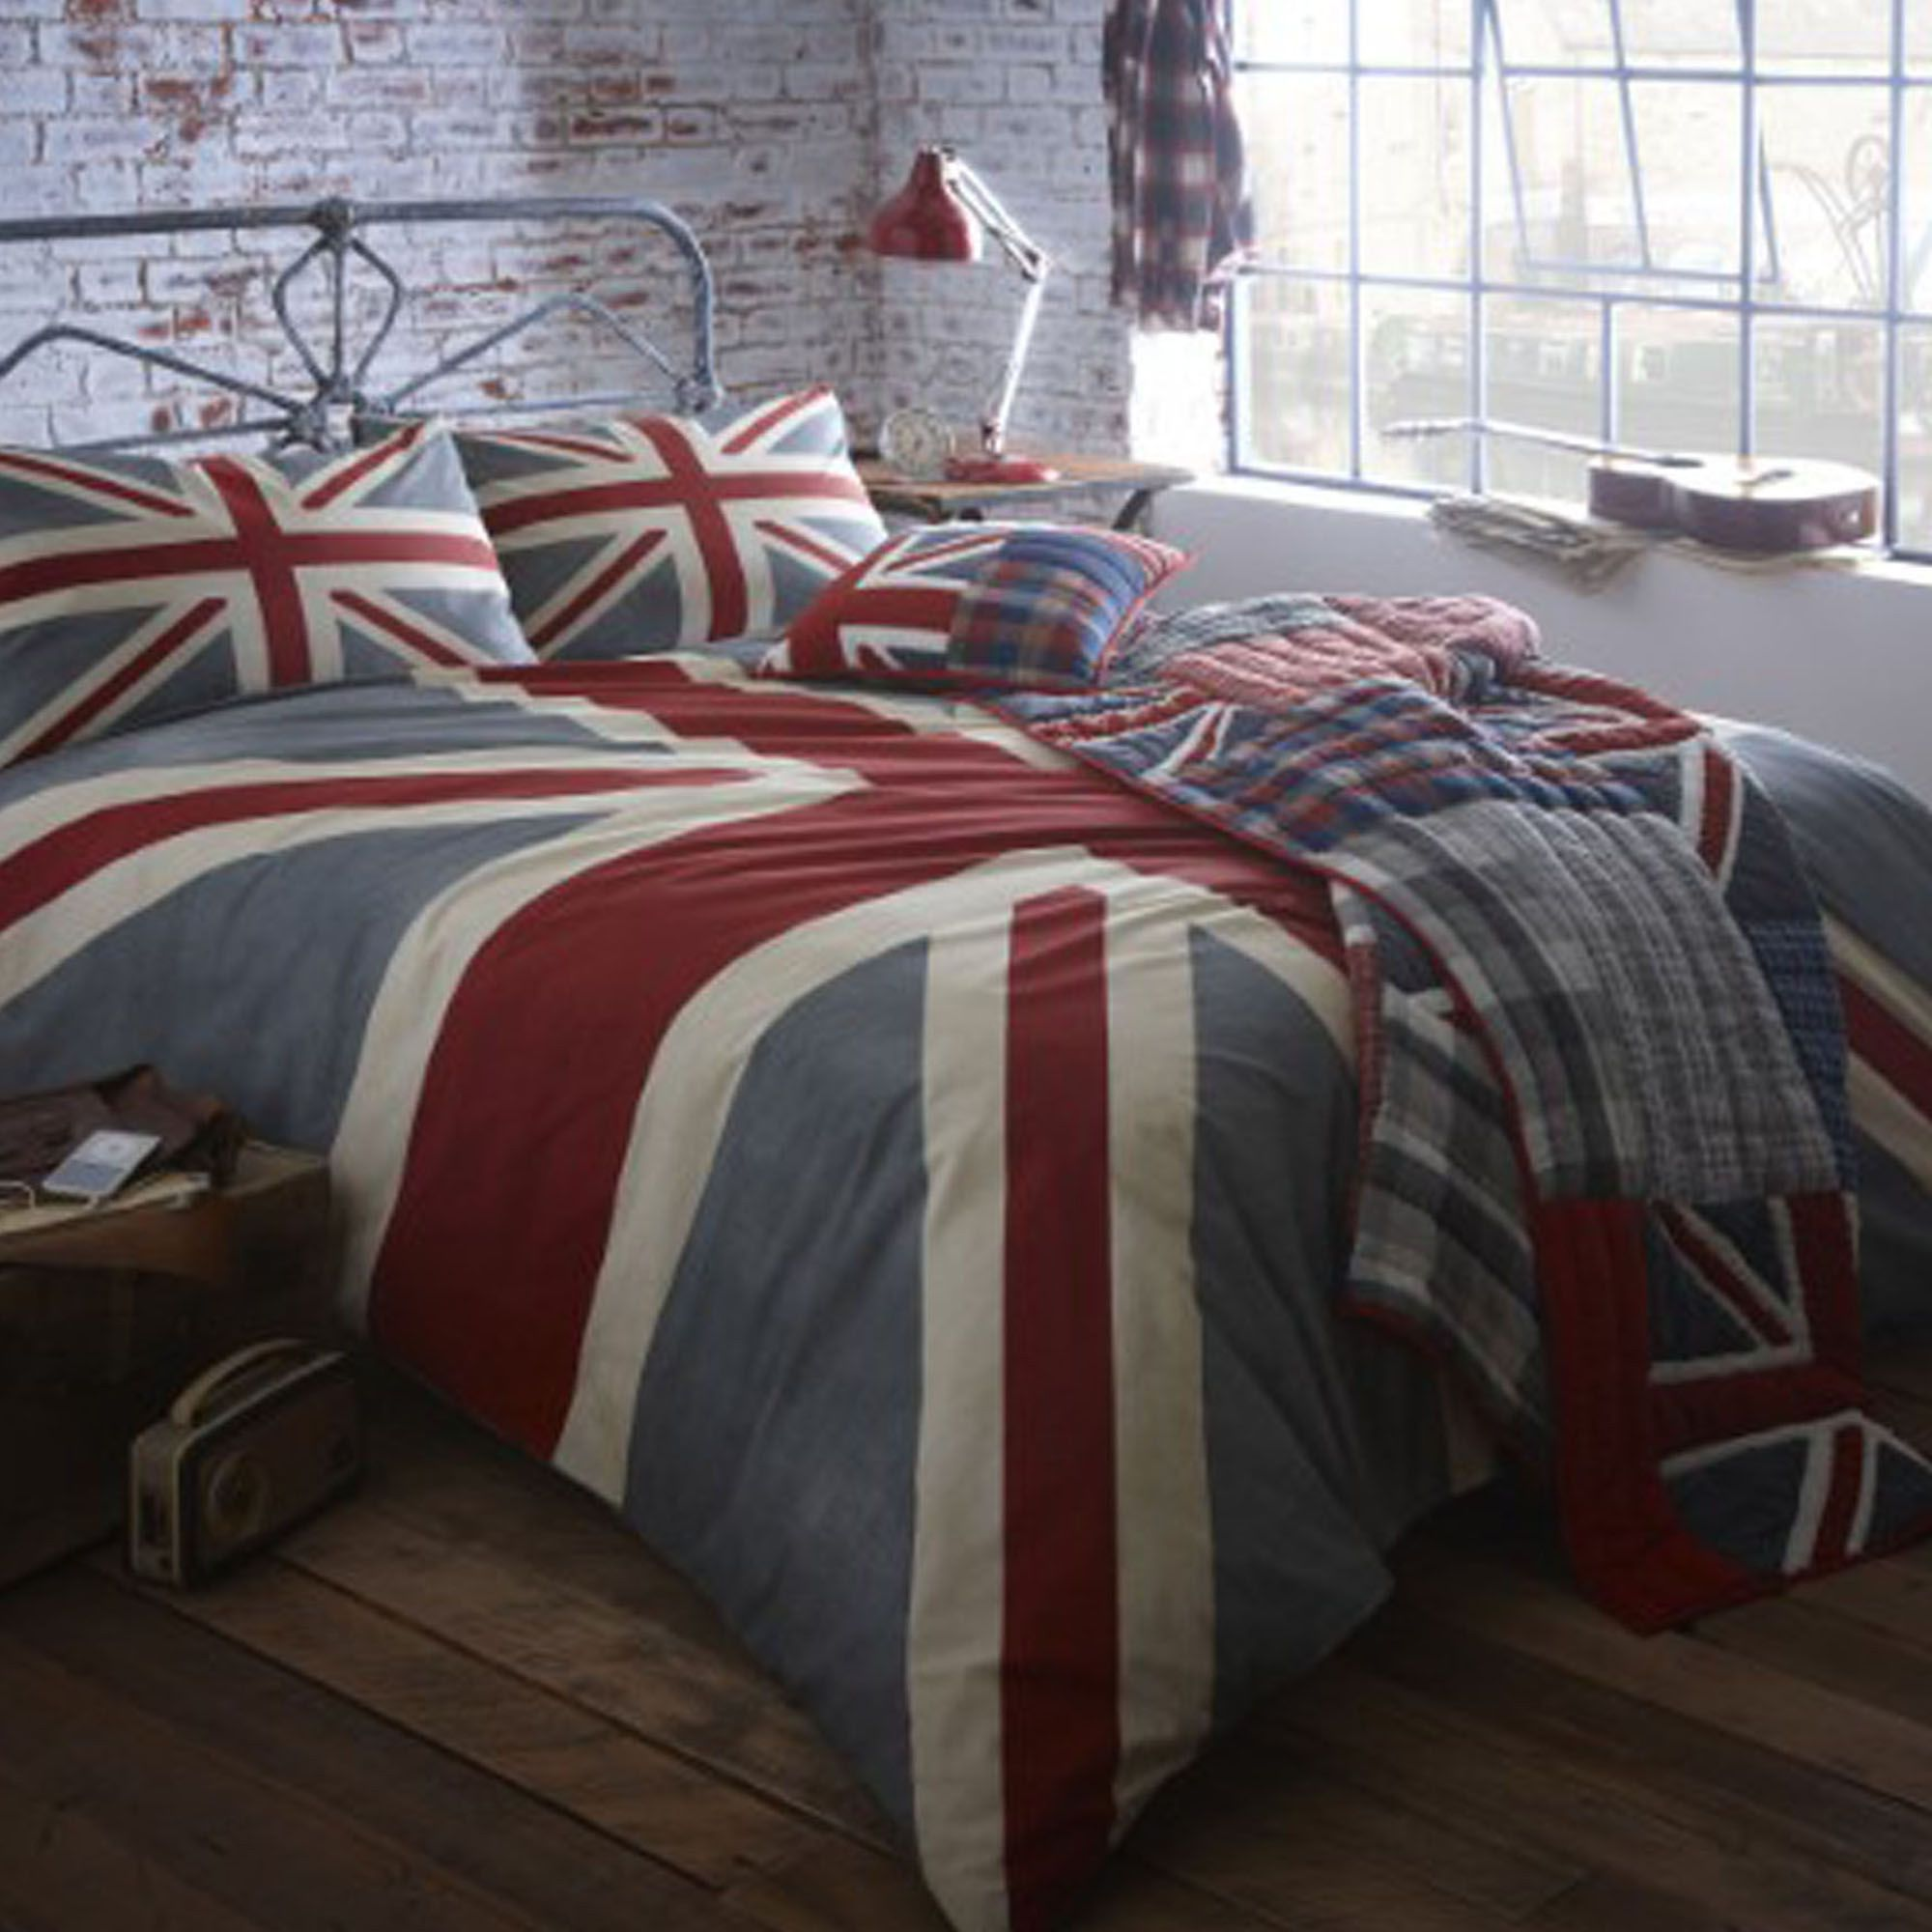 Home Collection Grey Vintage Union Jack Bedding Set From